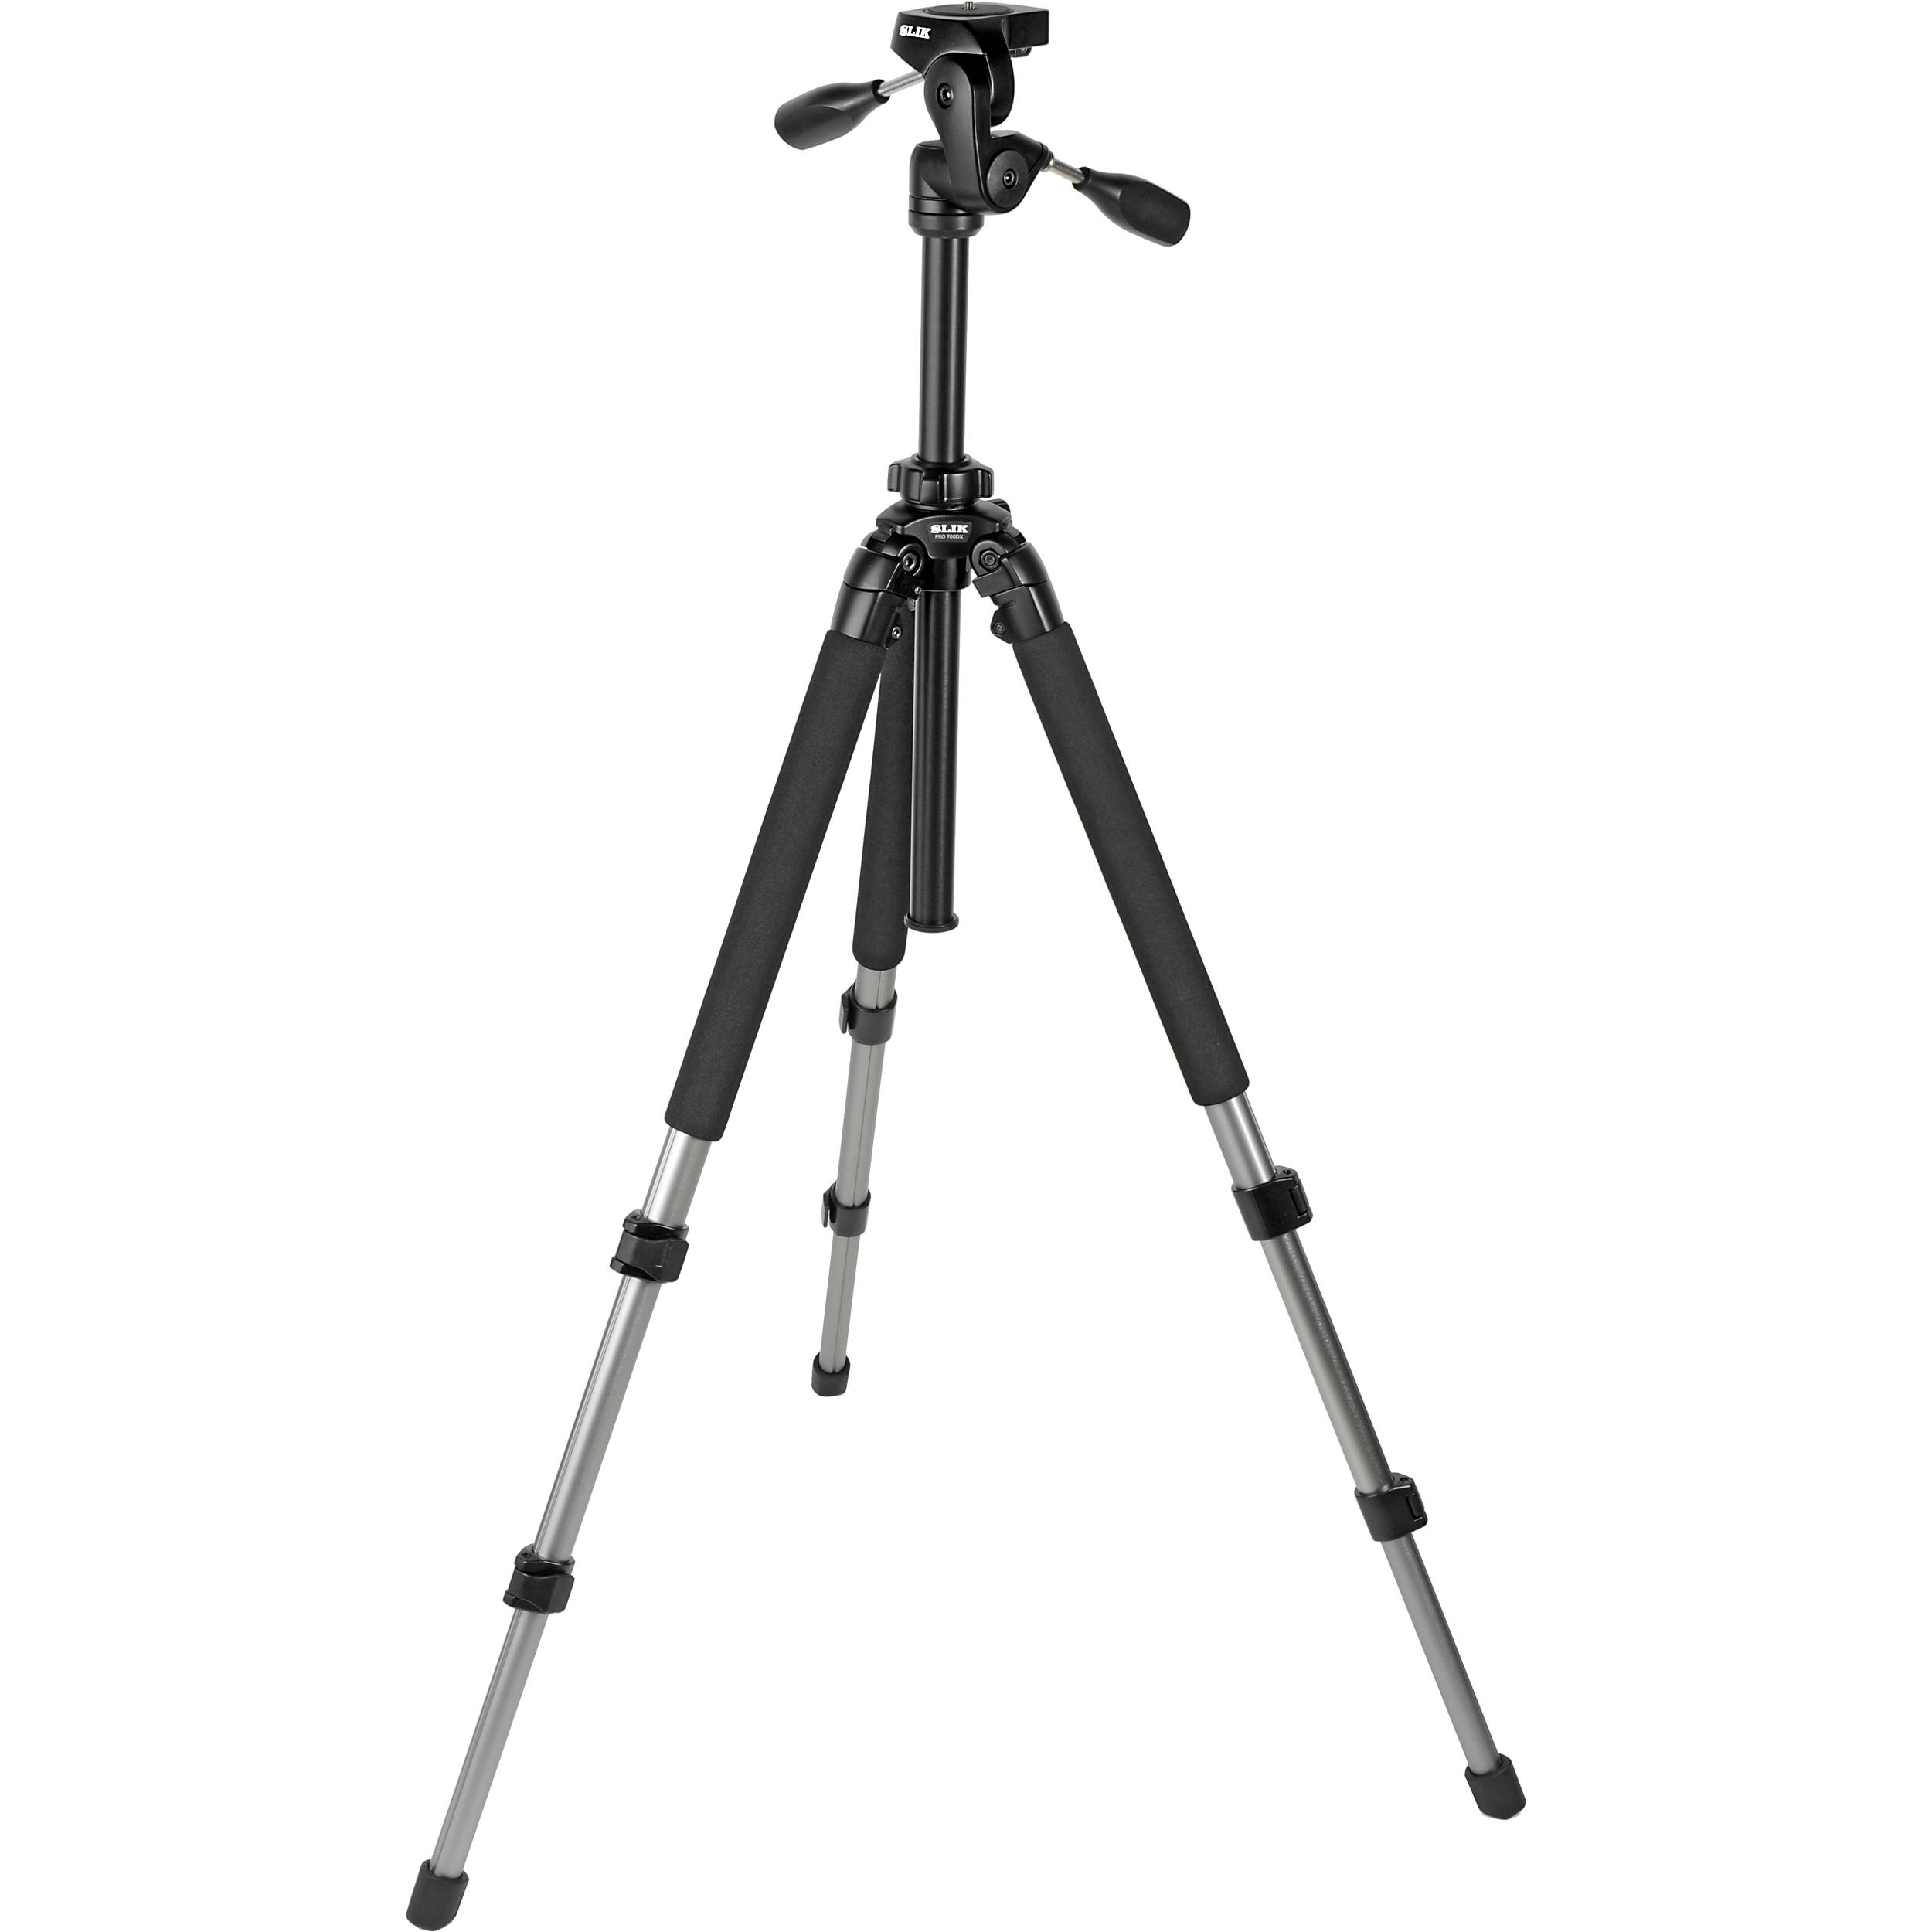 Slik Pro 700 DX Tripod with 700DX 3-Way, Pan-and-Tilt 615-315